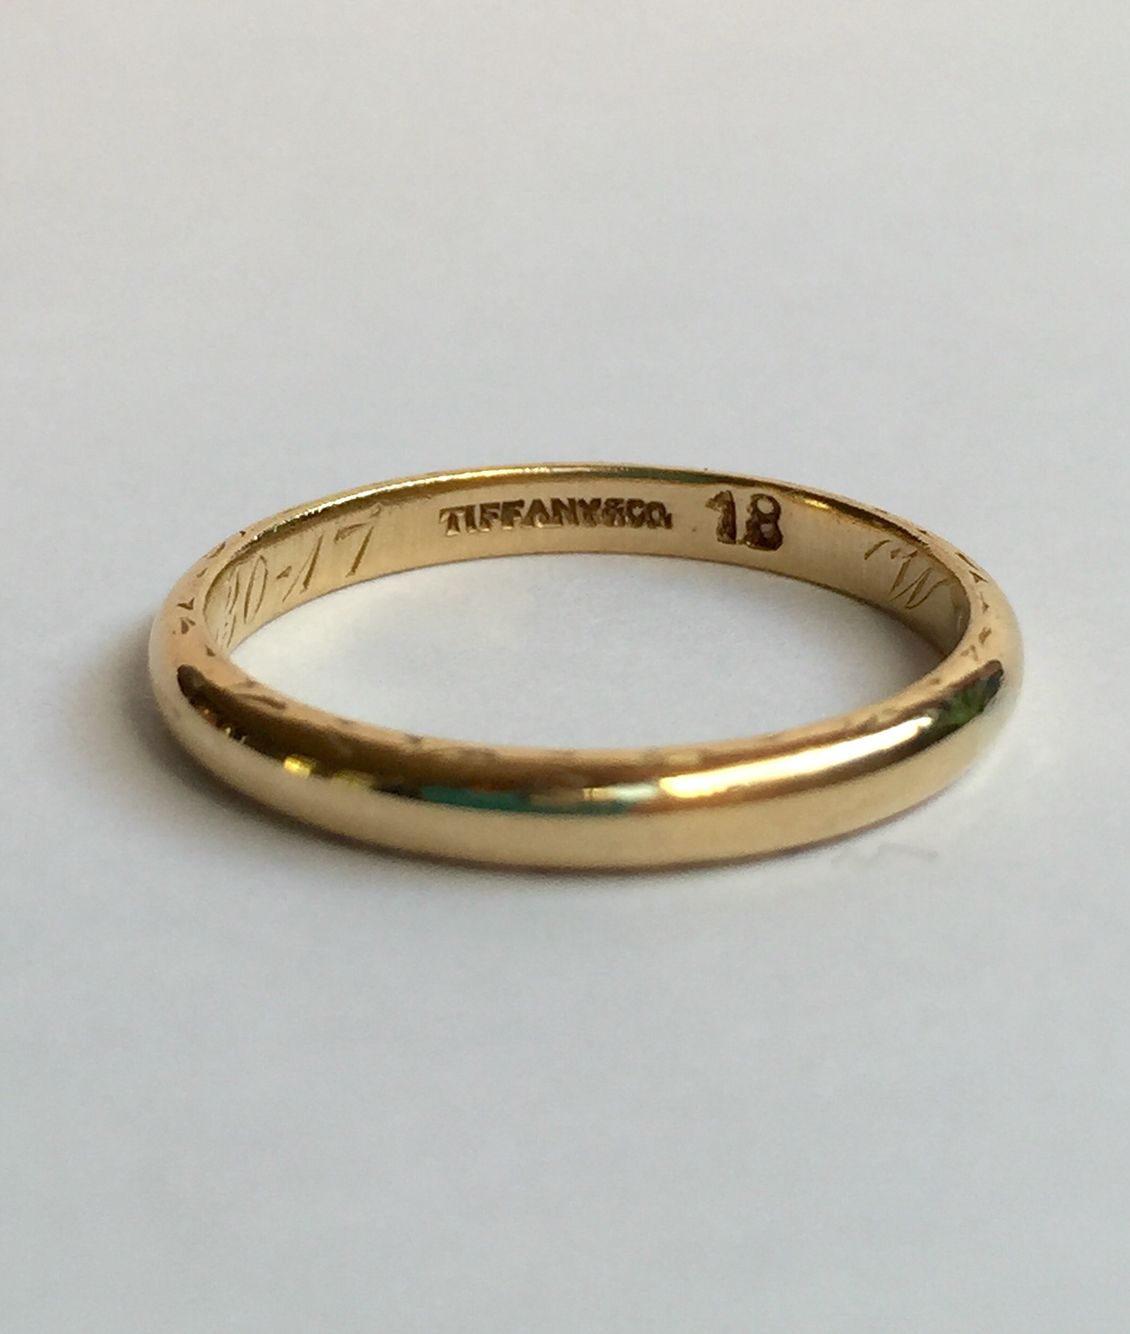 Rare 1917 Tiffany And Co 18k Gold Wedding Band Size 6 Available